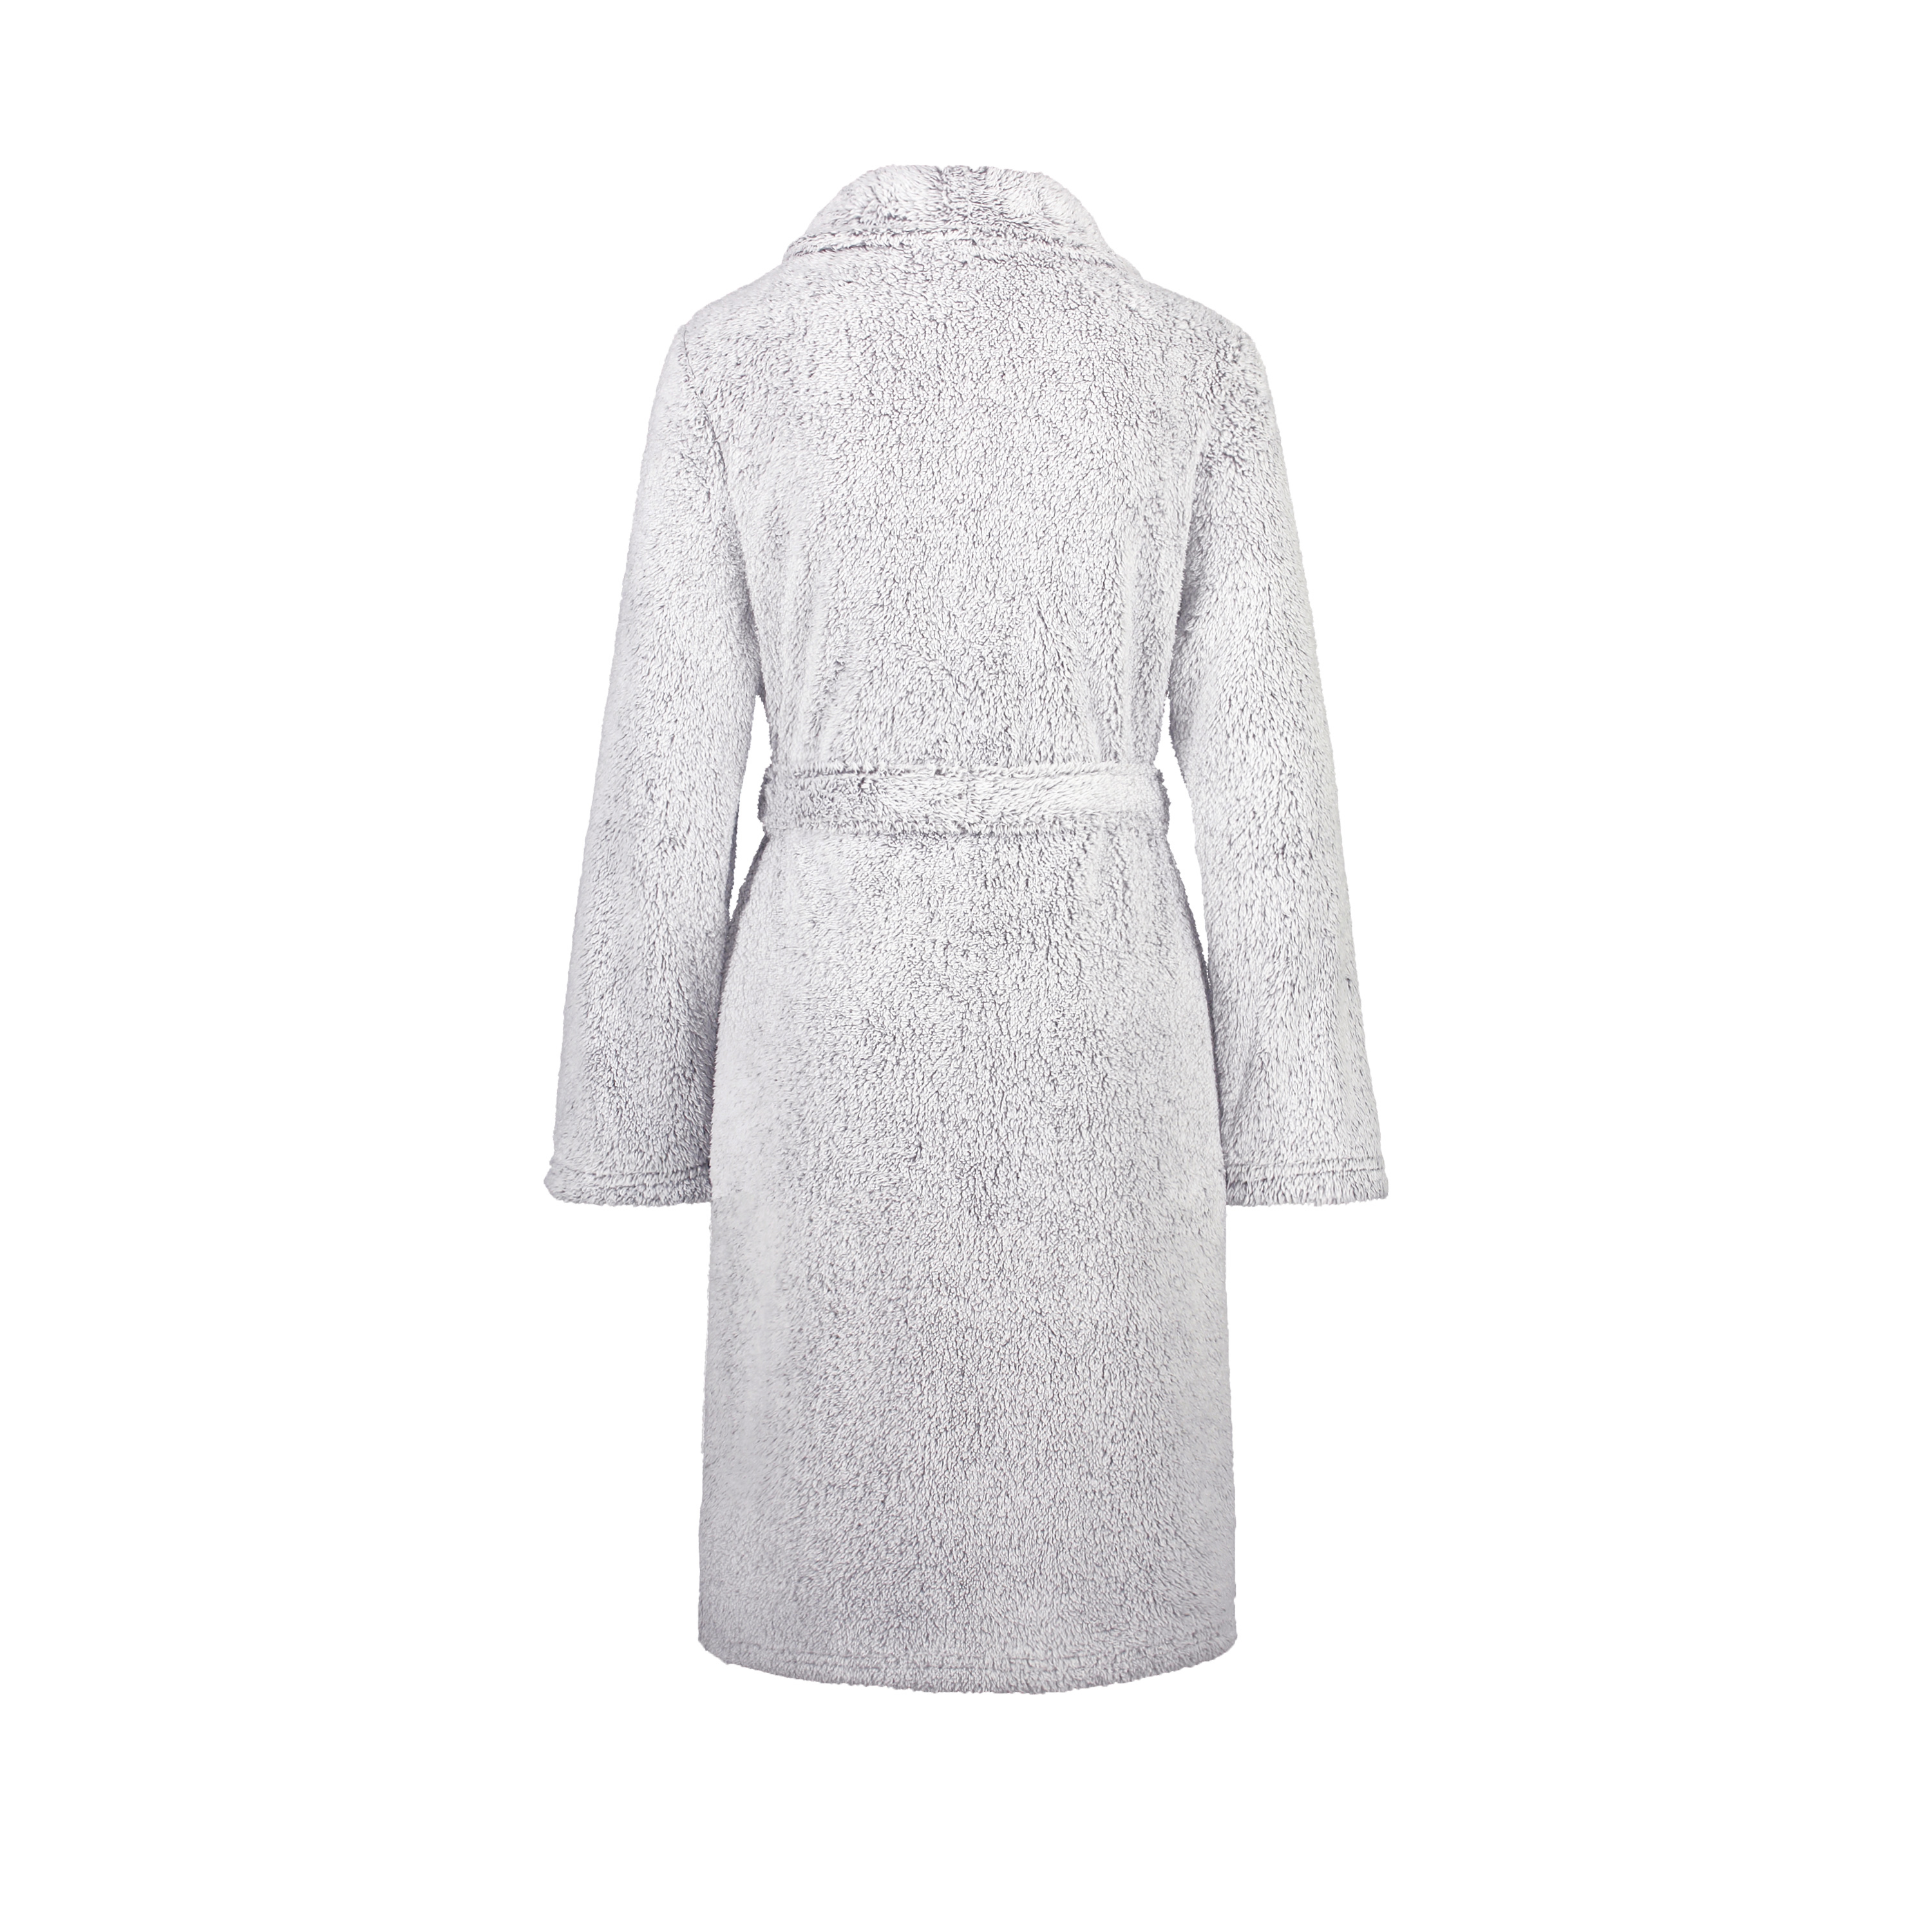 Bademantel Fleece, Grau, main